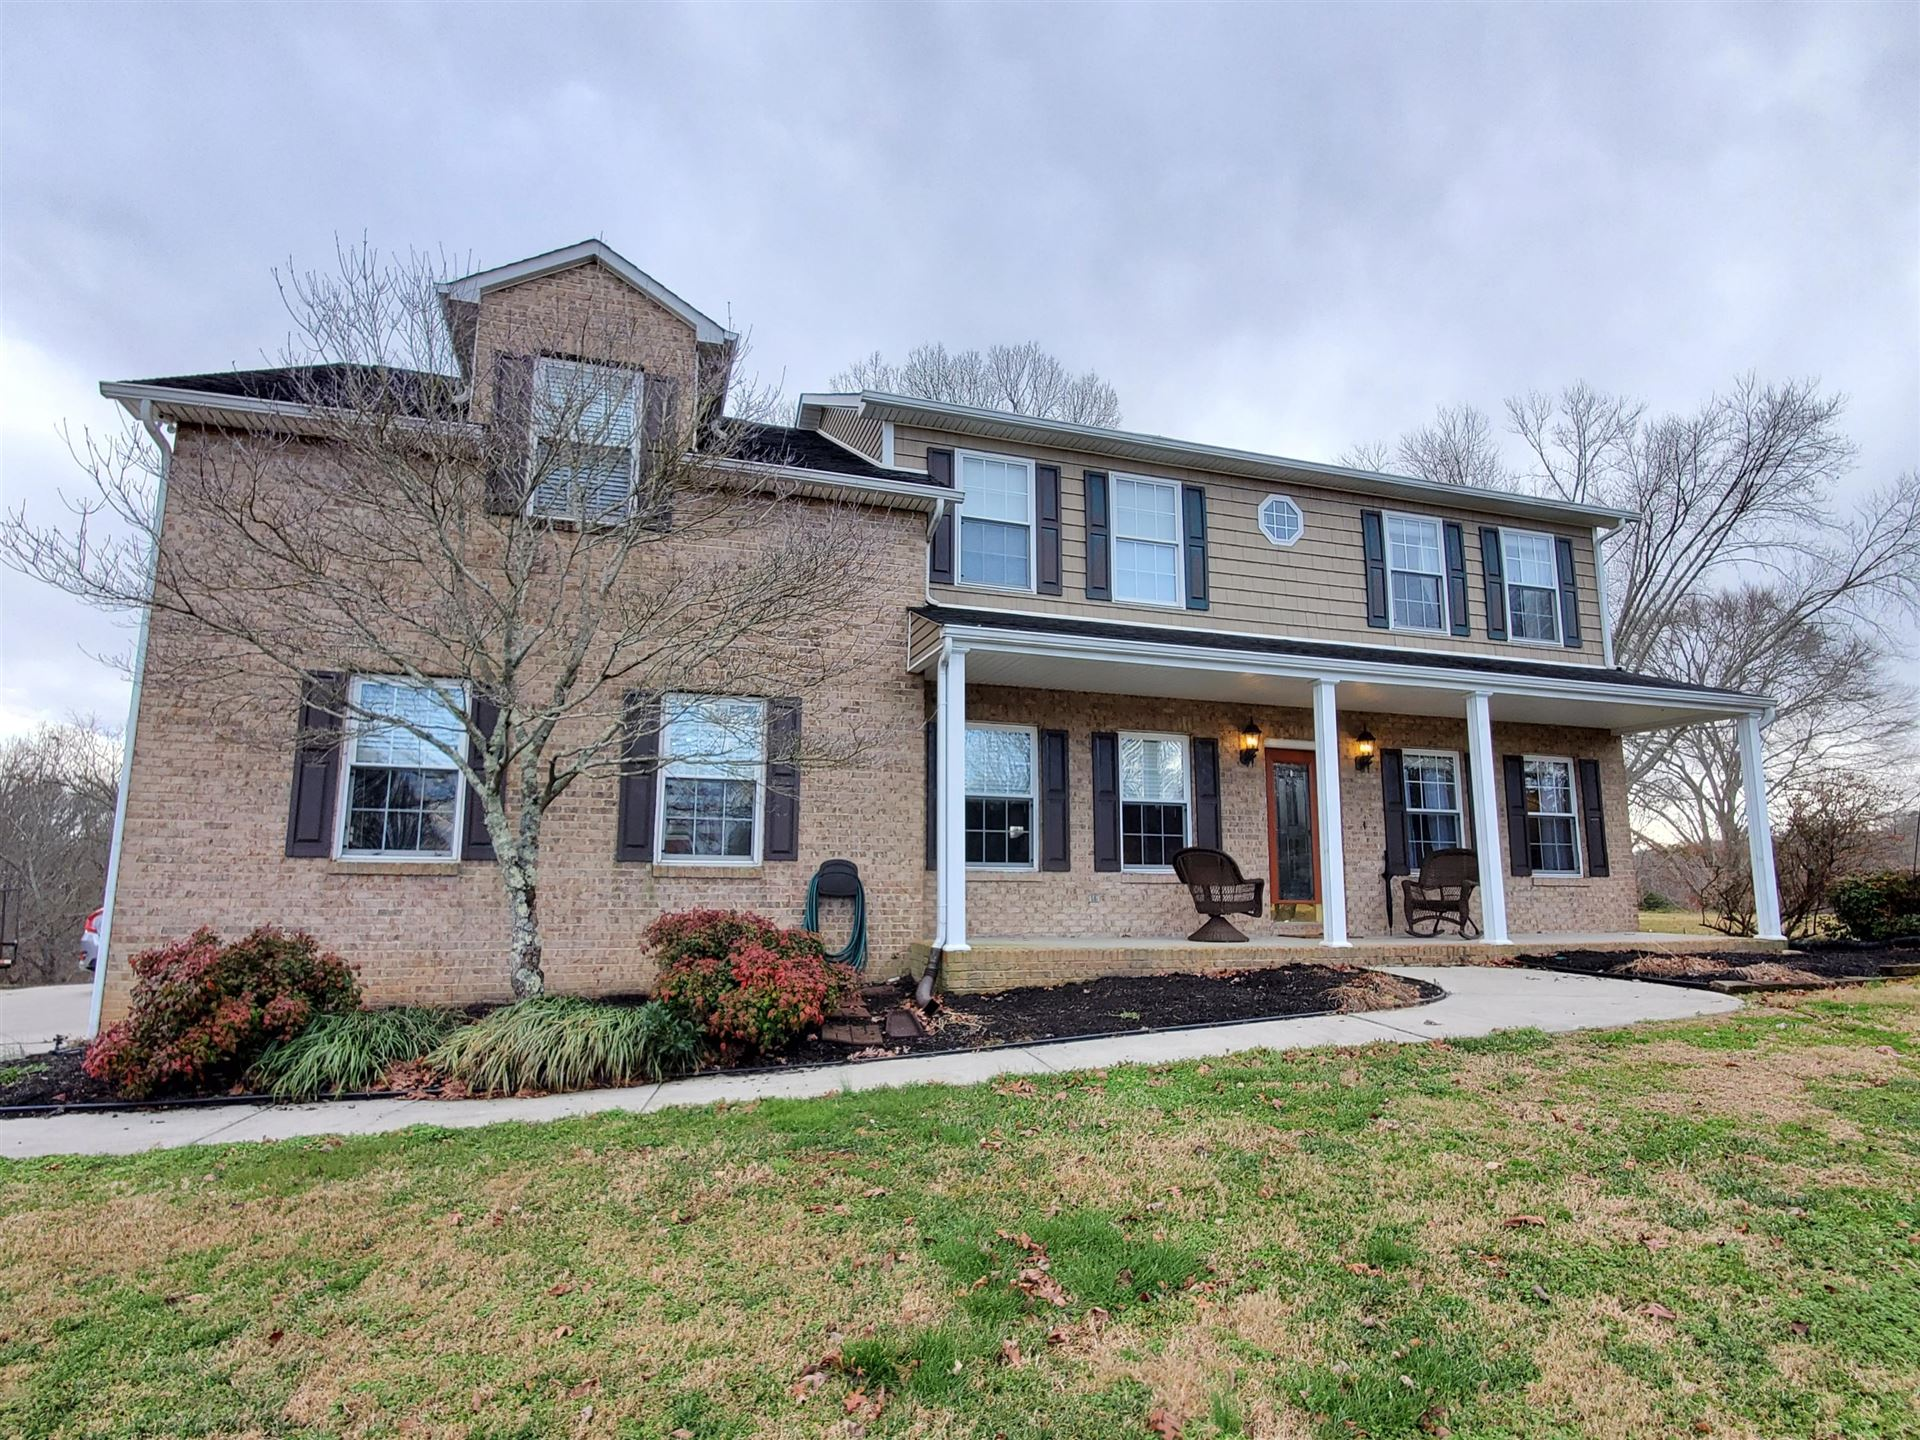 Photo of 1103 N Campbell Station Road, Knoxville, TN 37932 (MLS # 1140176)